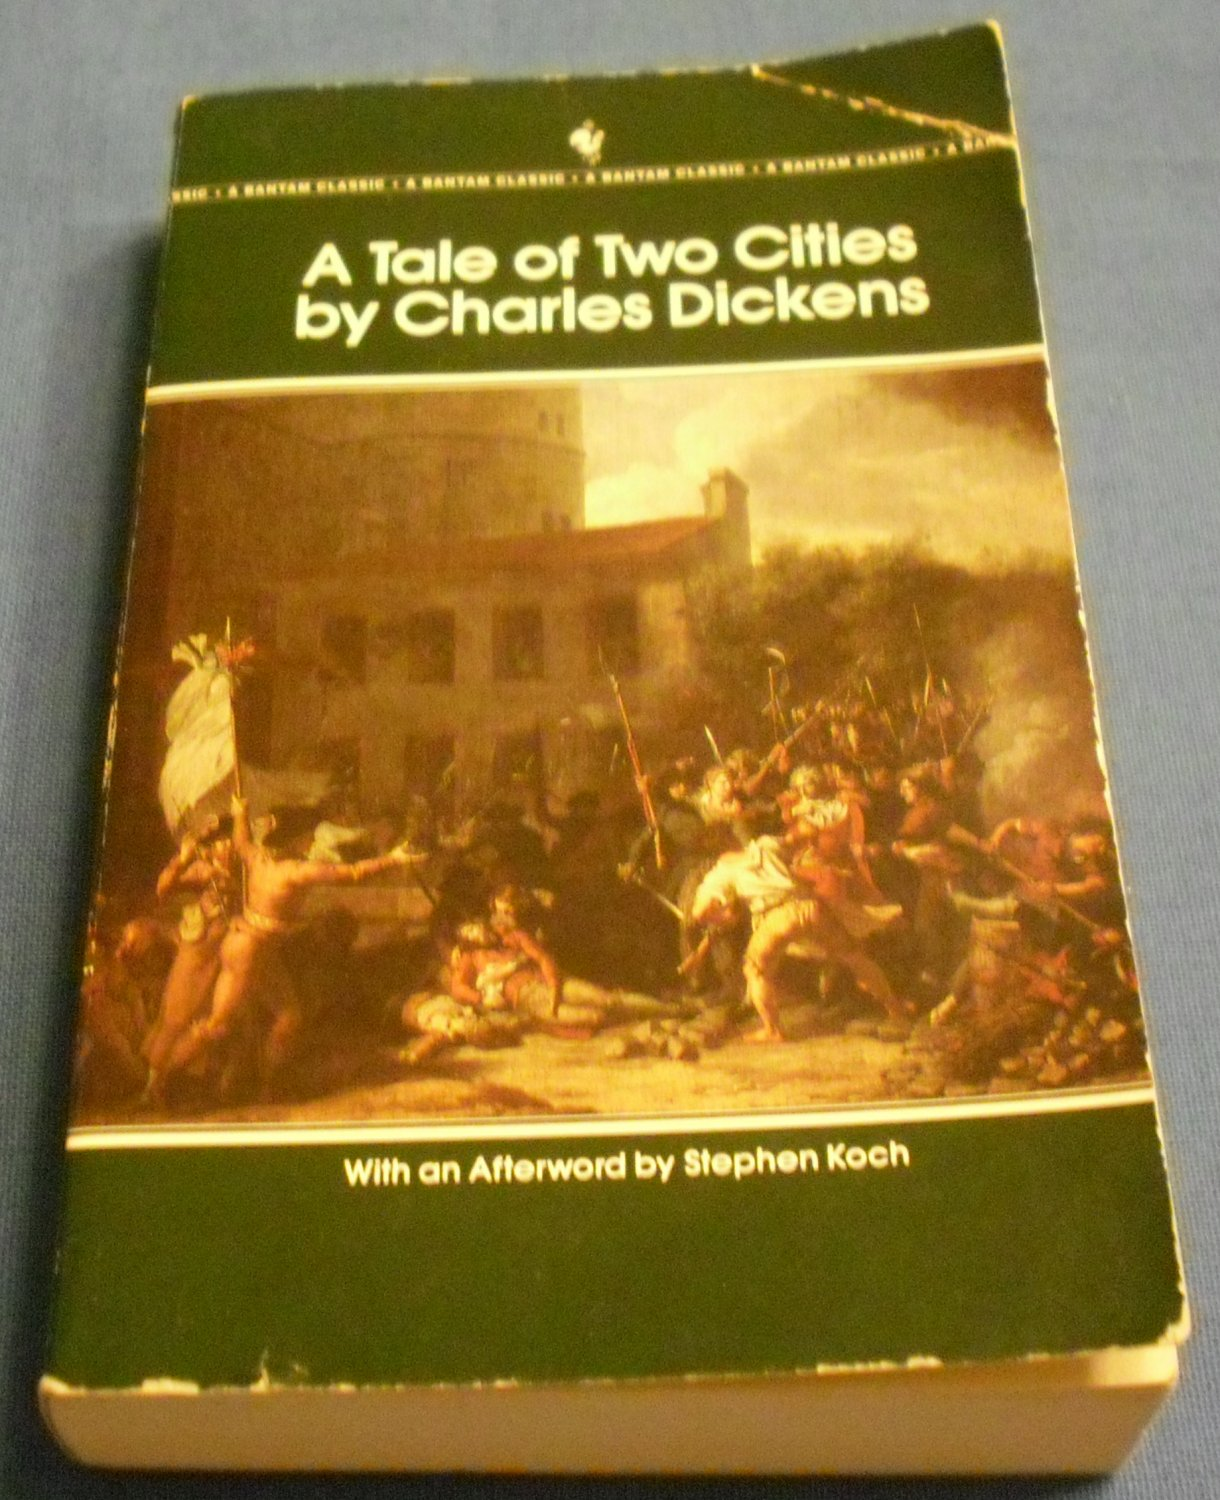 an introduction to the literary analysis of a tale of two cities by charles dickens An analysis of a tale of two cities by reading the novel a tale of two cities by charles dickens, it gives us an understanding of the french revolutionary war that cannot be found in textbooks.